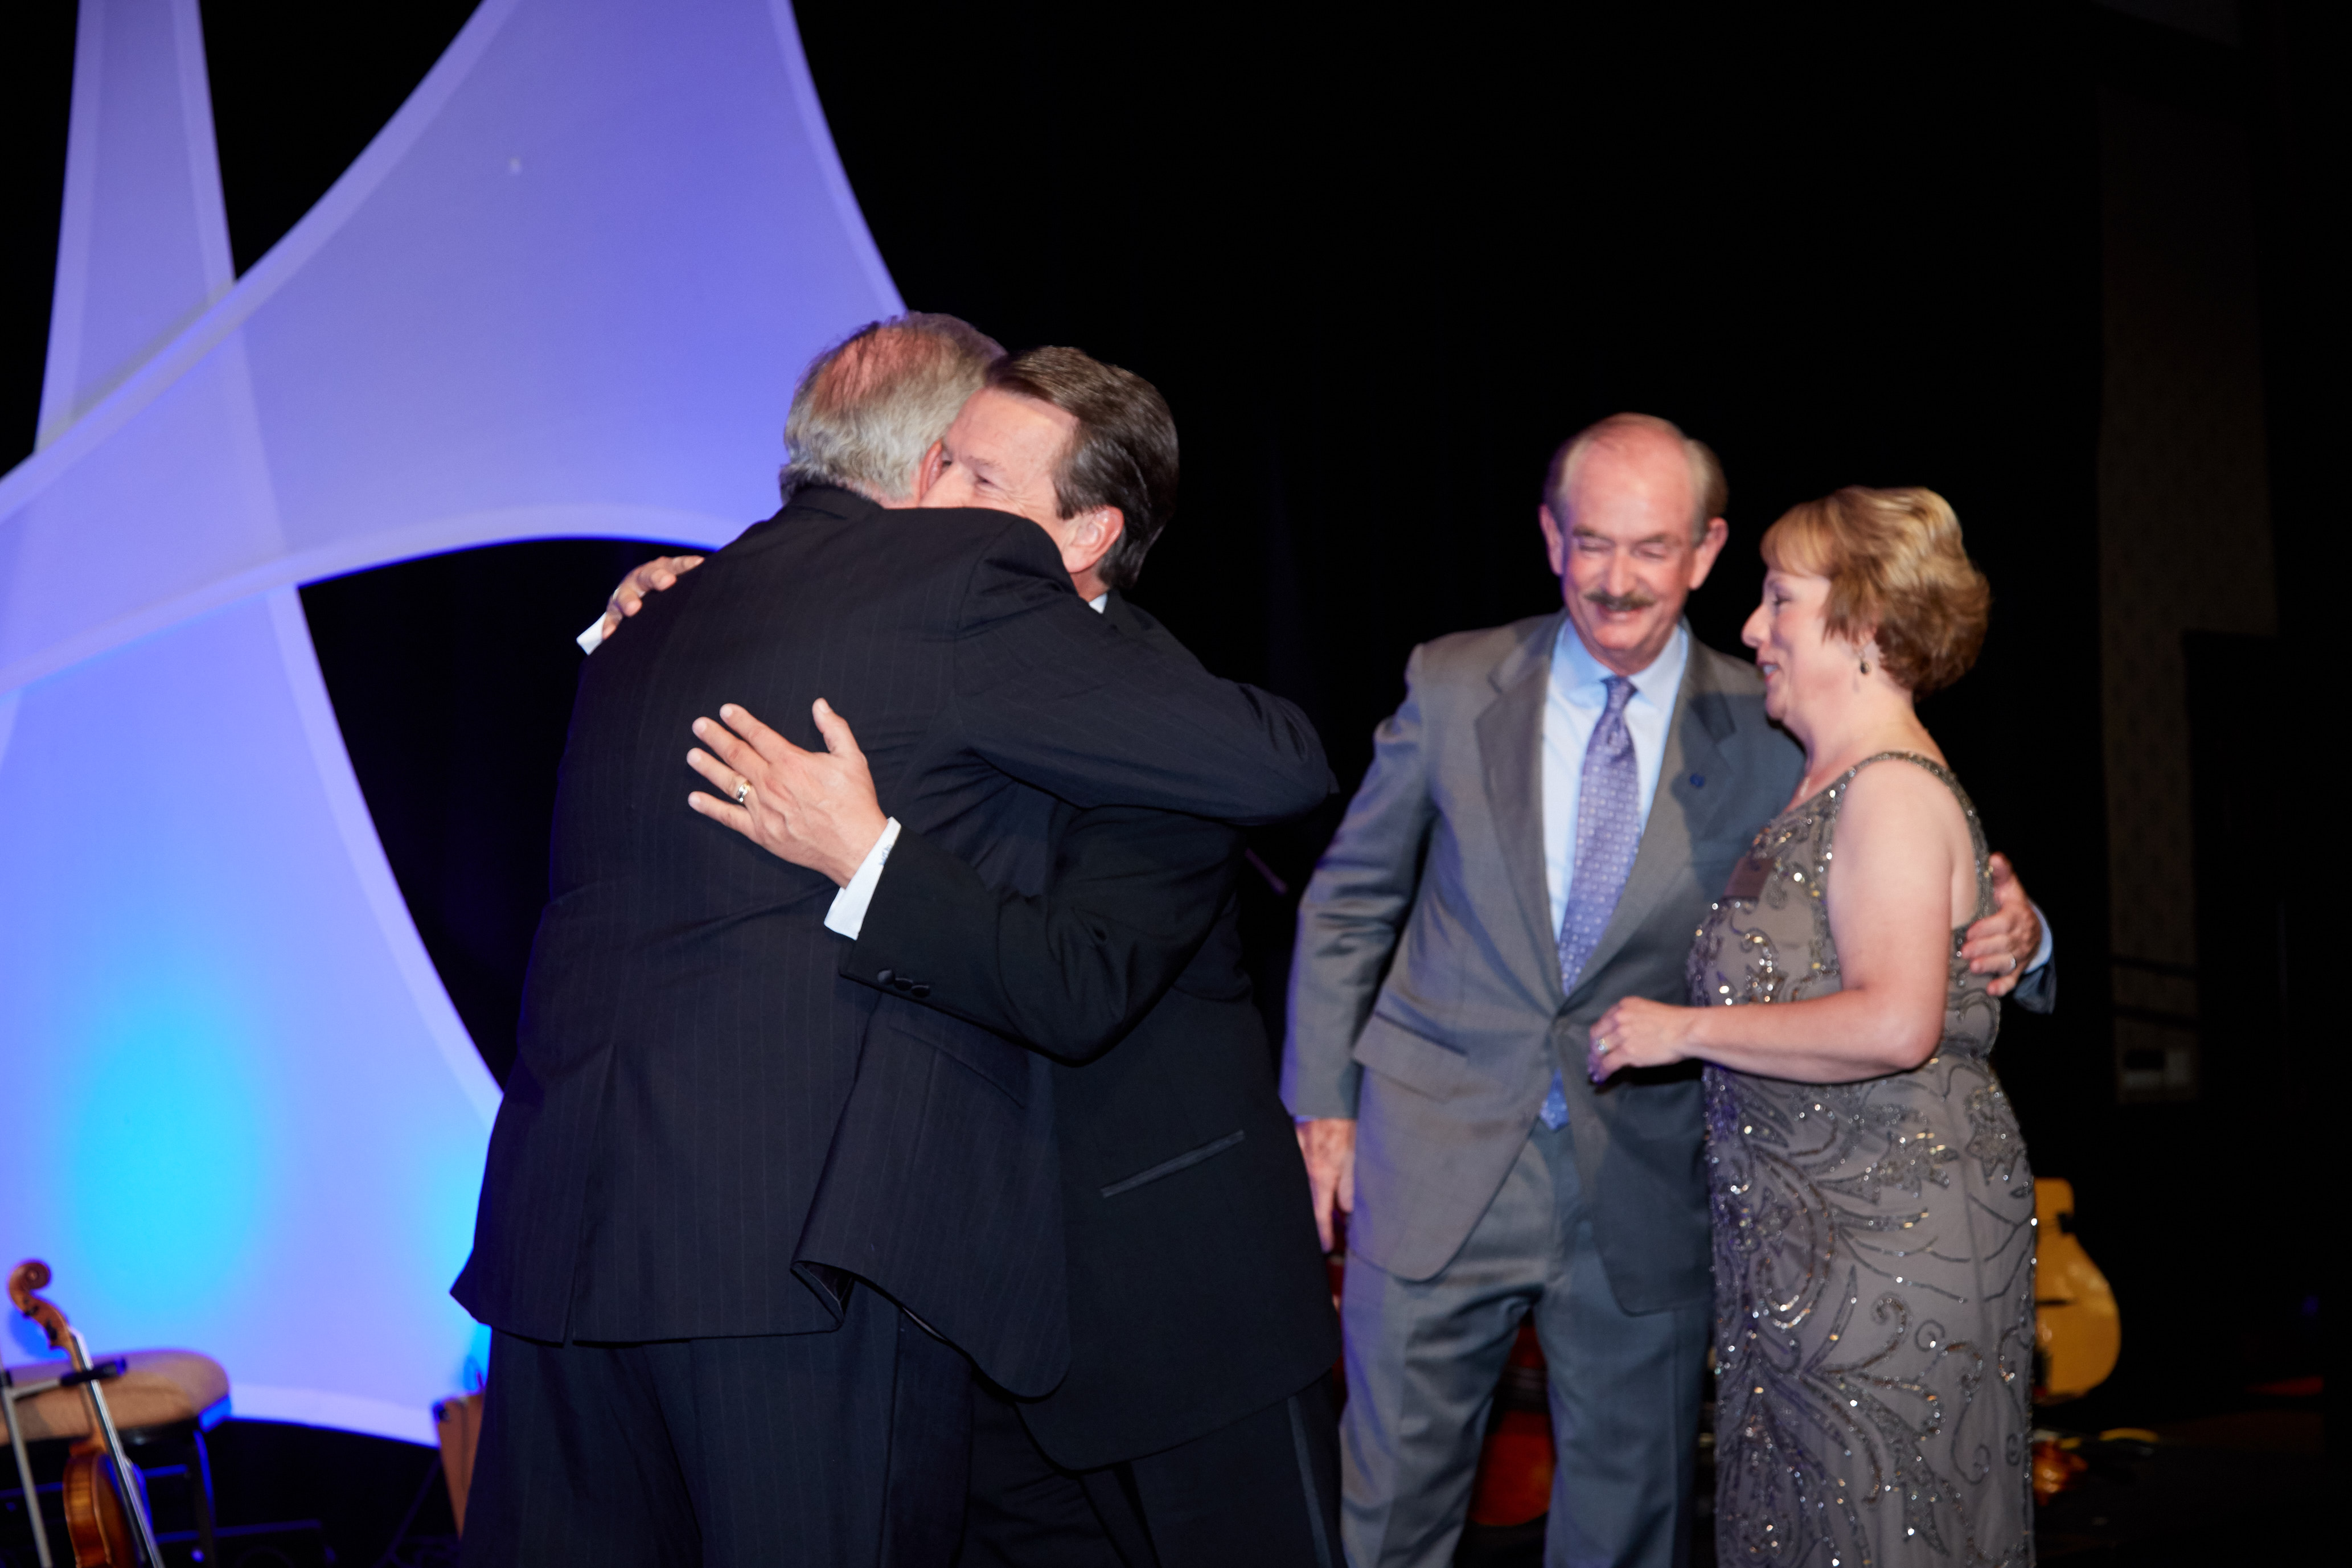 Photo of Scott Matthias accepting a REALTOR of the YEAR Award